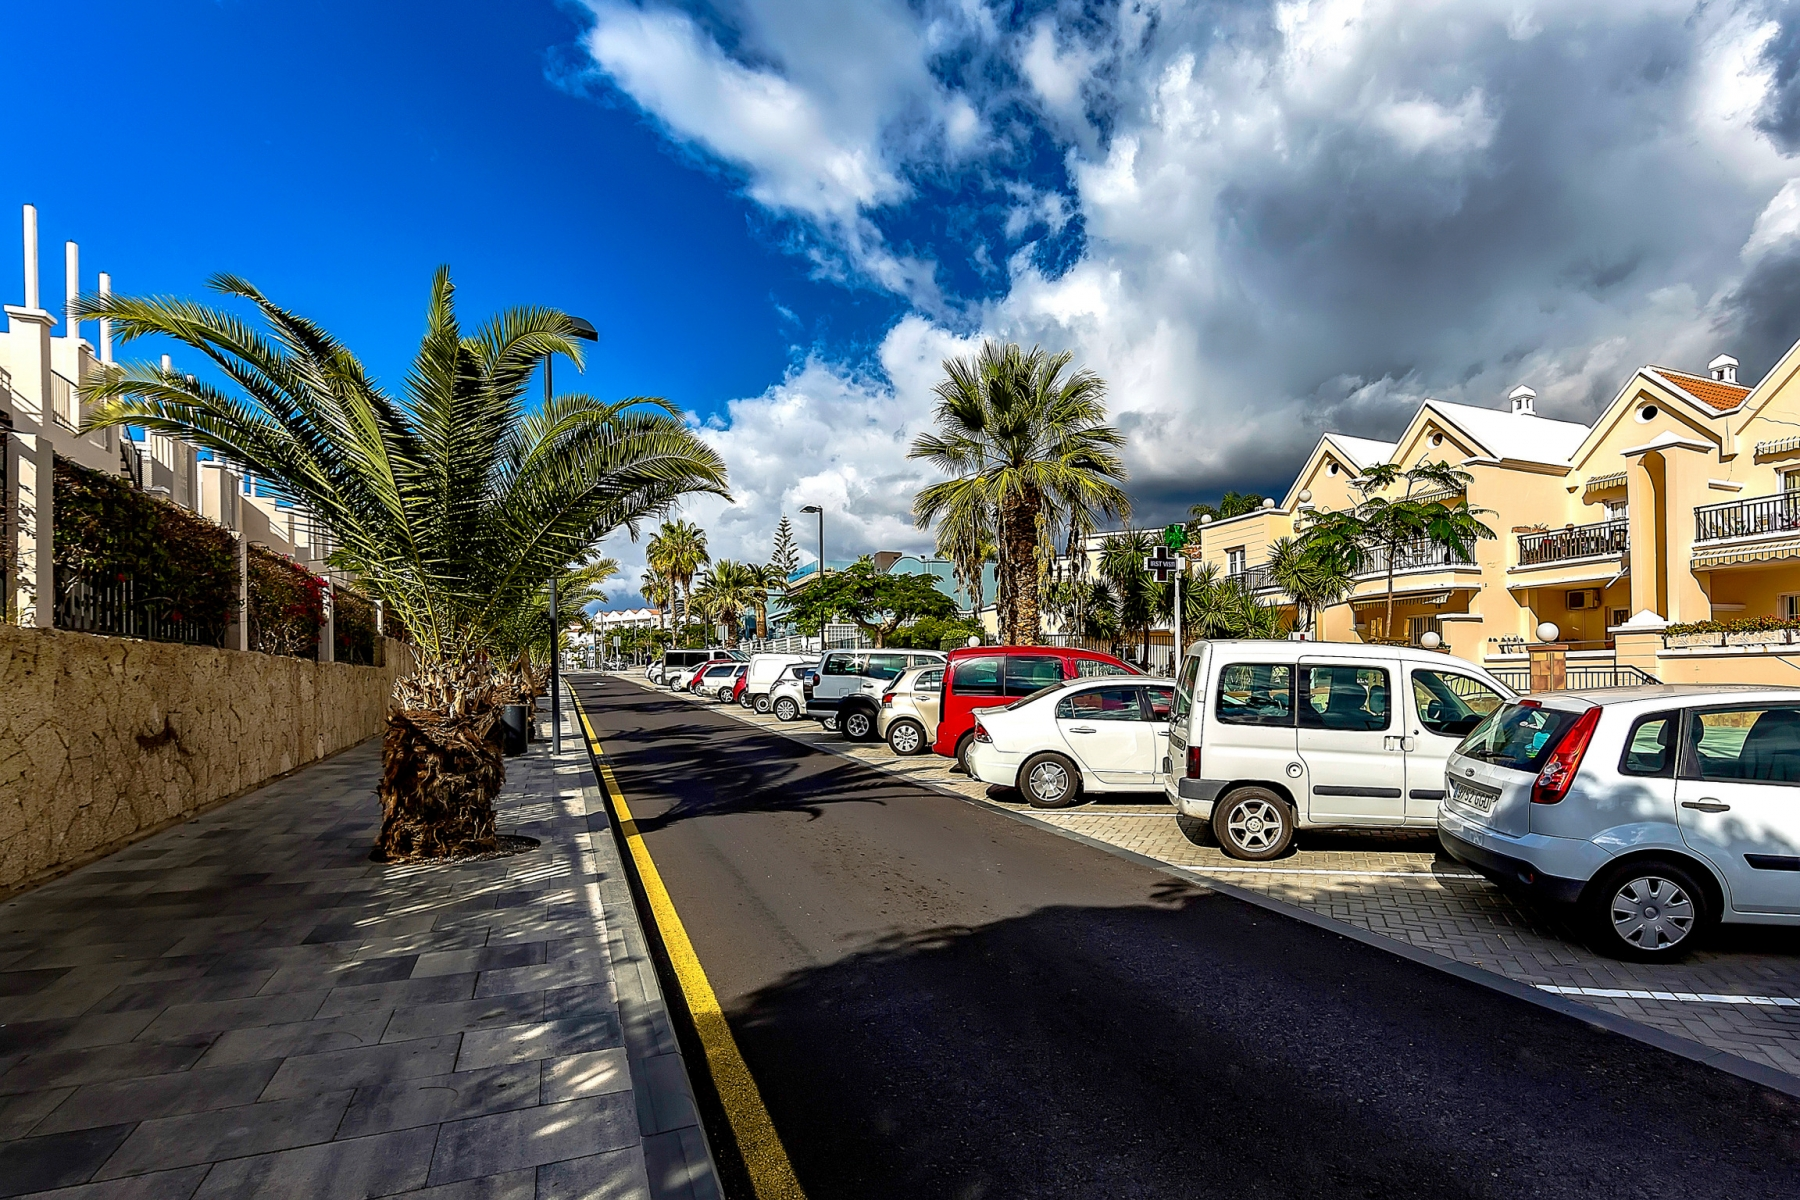 Properties for Sale in Tenerife, Canary Islands, Spain | SylkWayStar Real Estate. 1 bedroom apartment Yucca Park. Image-22601